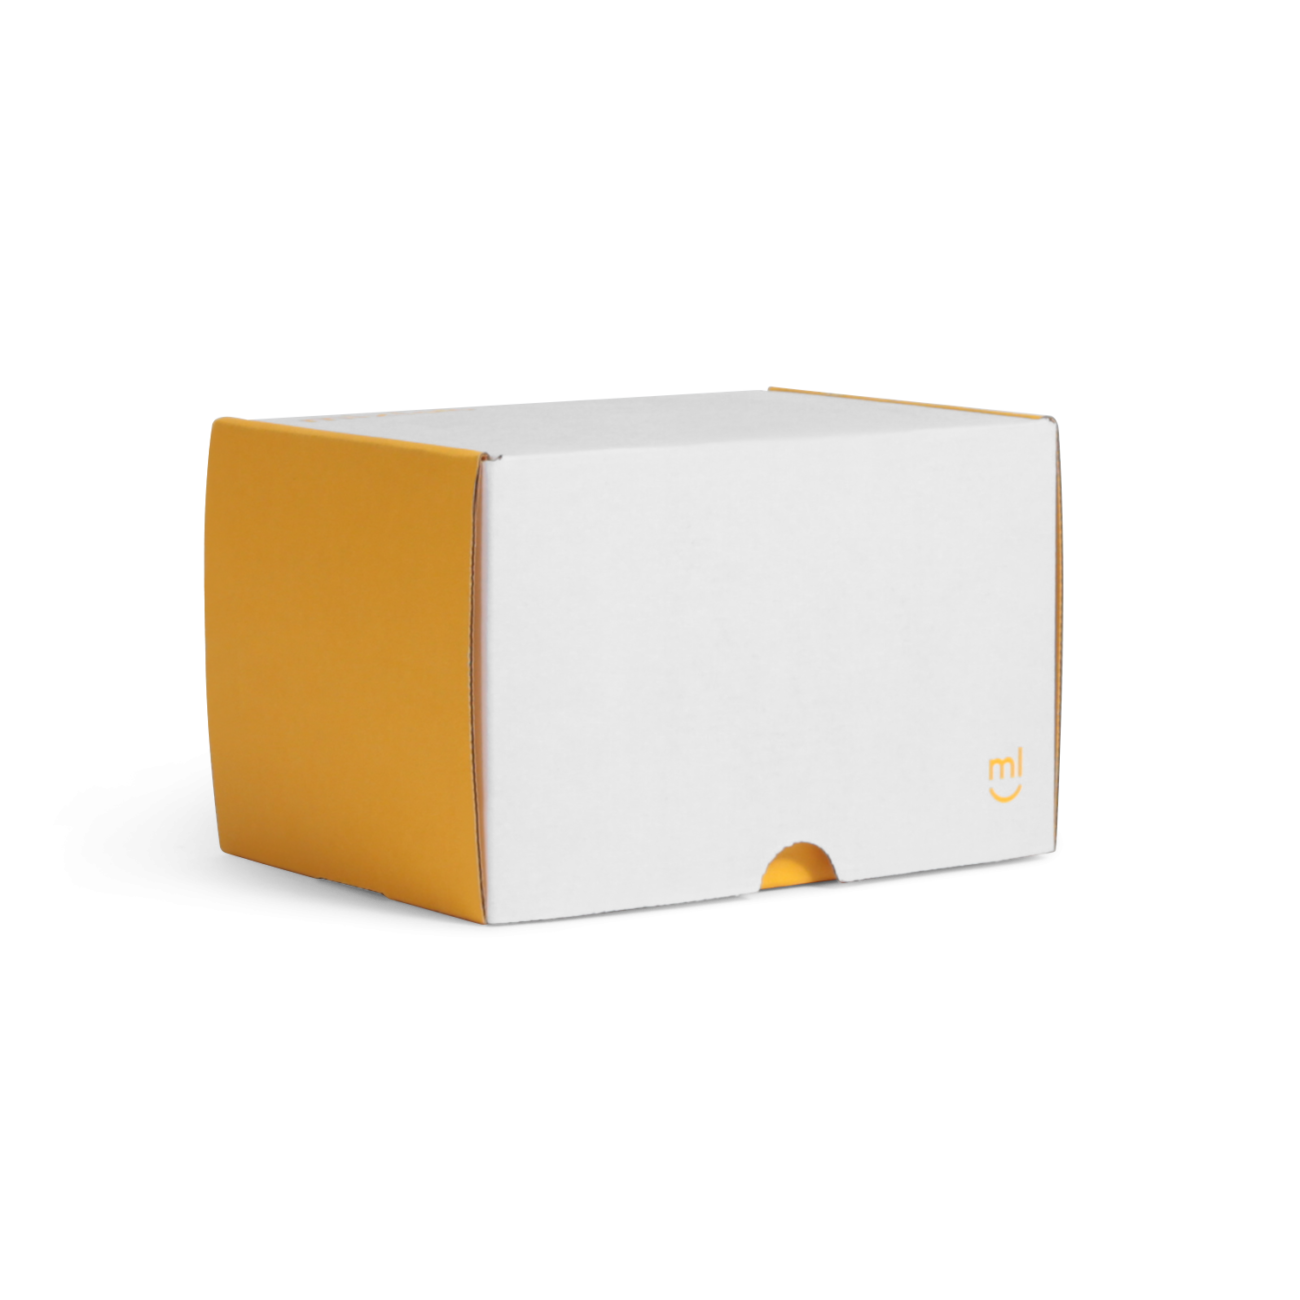 Custom roll end tuck front corrugated mailer box with thumb notch, tuck front lid. Flexography on mottled white liner.